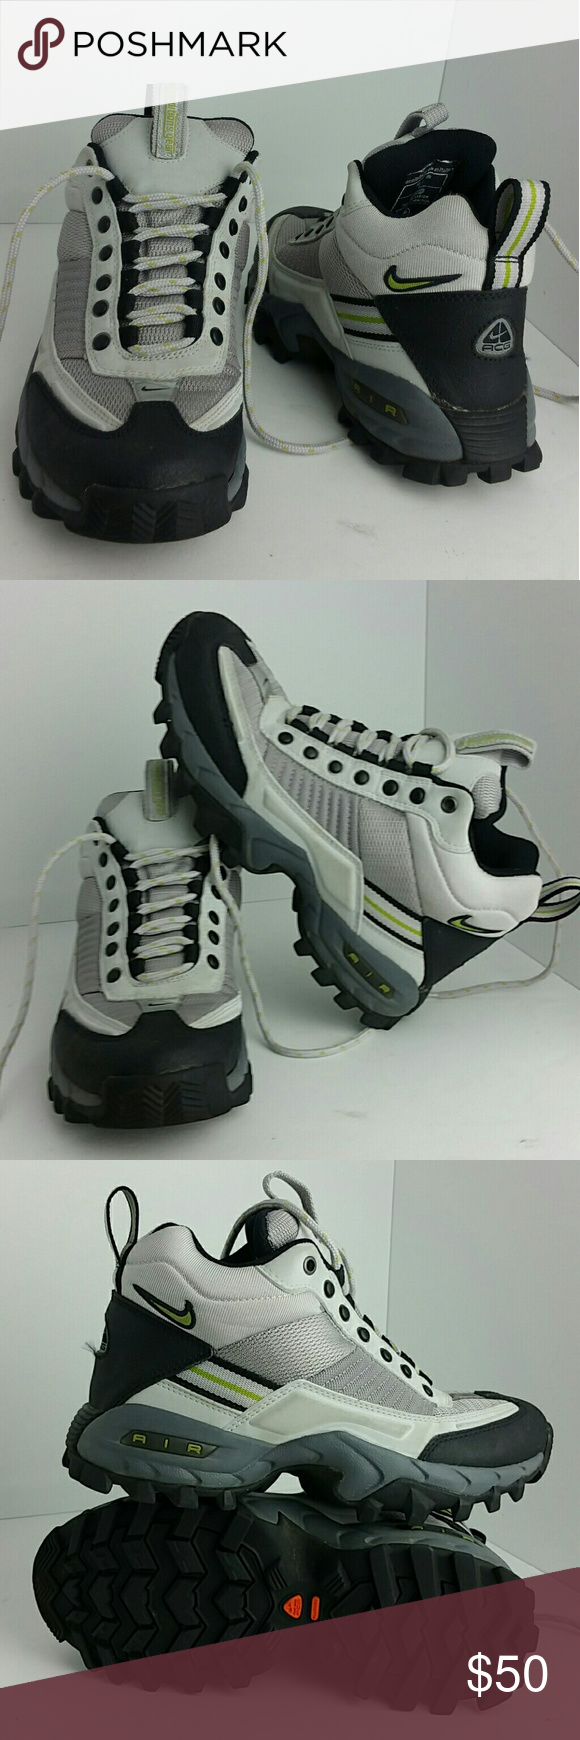 cleaning nike acg boots a98b997a2